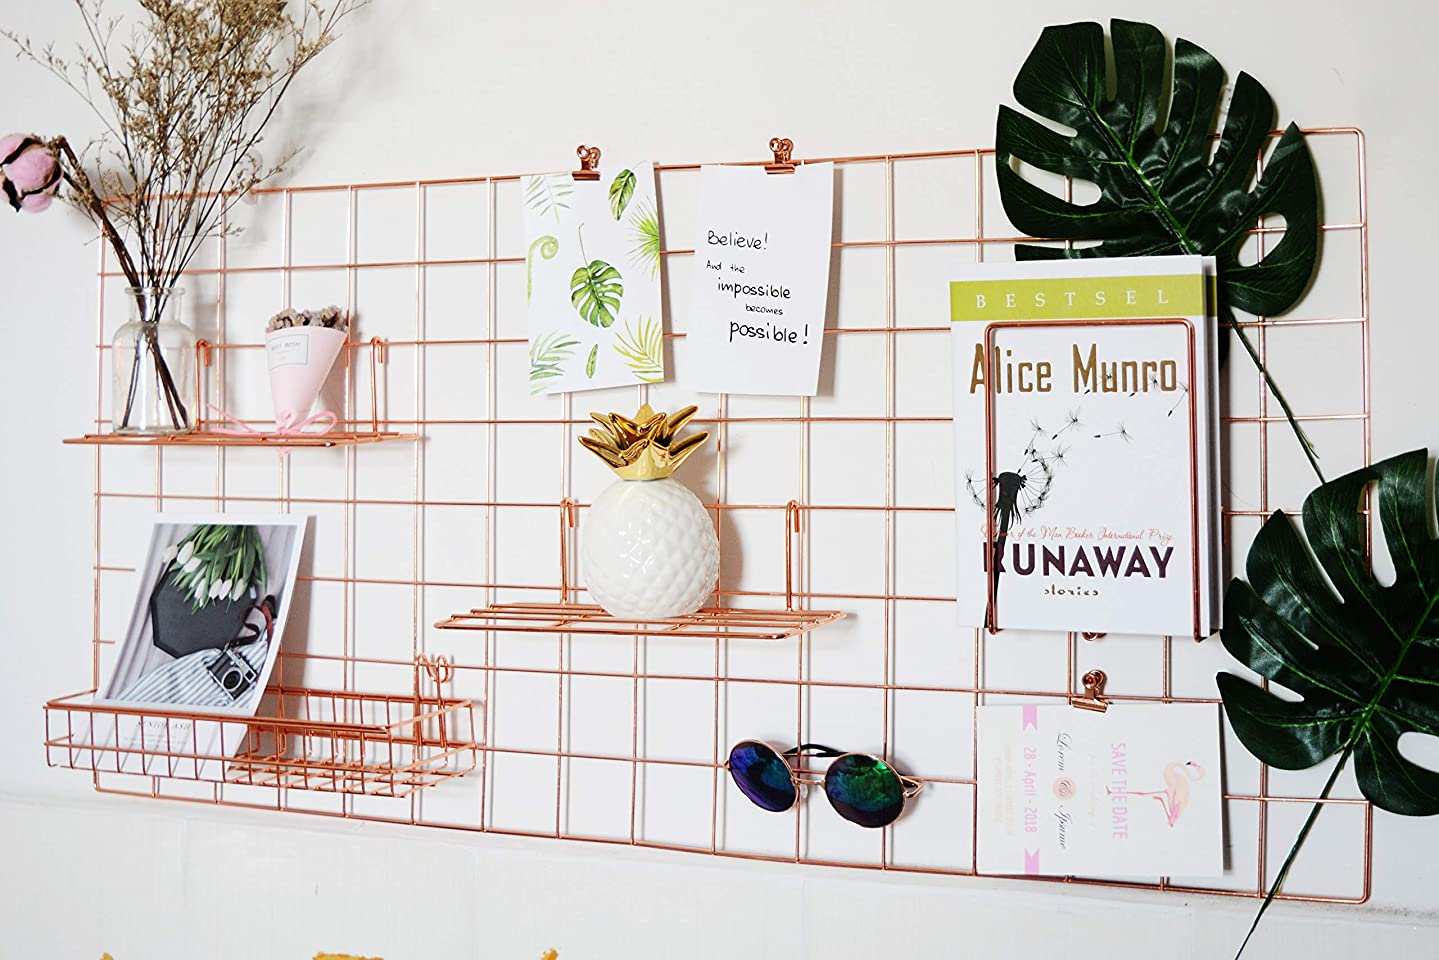 Wire Grid Panel,Rose Gold Grid Photo Wall,Wall Mounted Metal Panel for Photo Display,Decoractive Shelf Rack for Home Decor Storage,Memo Display and Hanging Organizer,Size:17.7